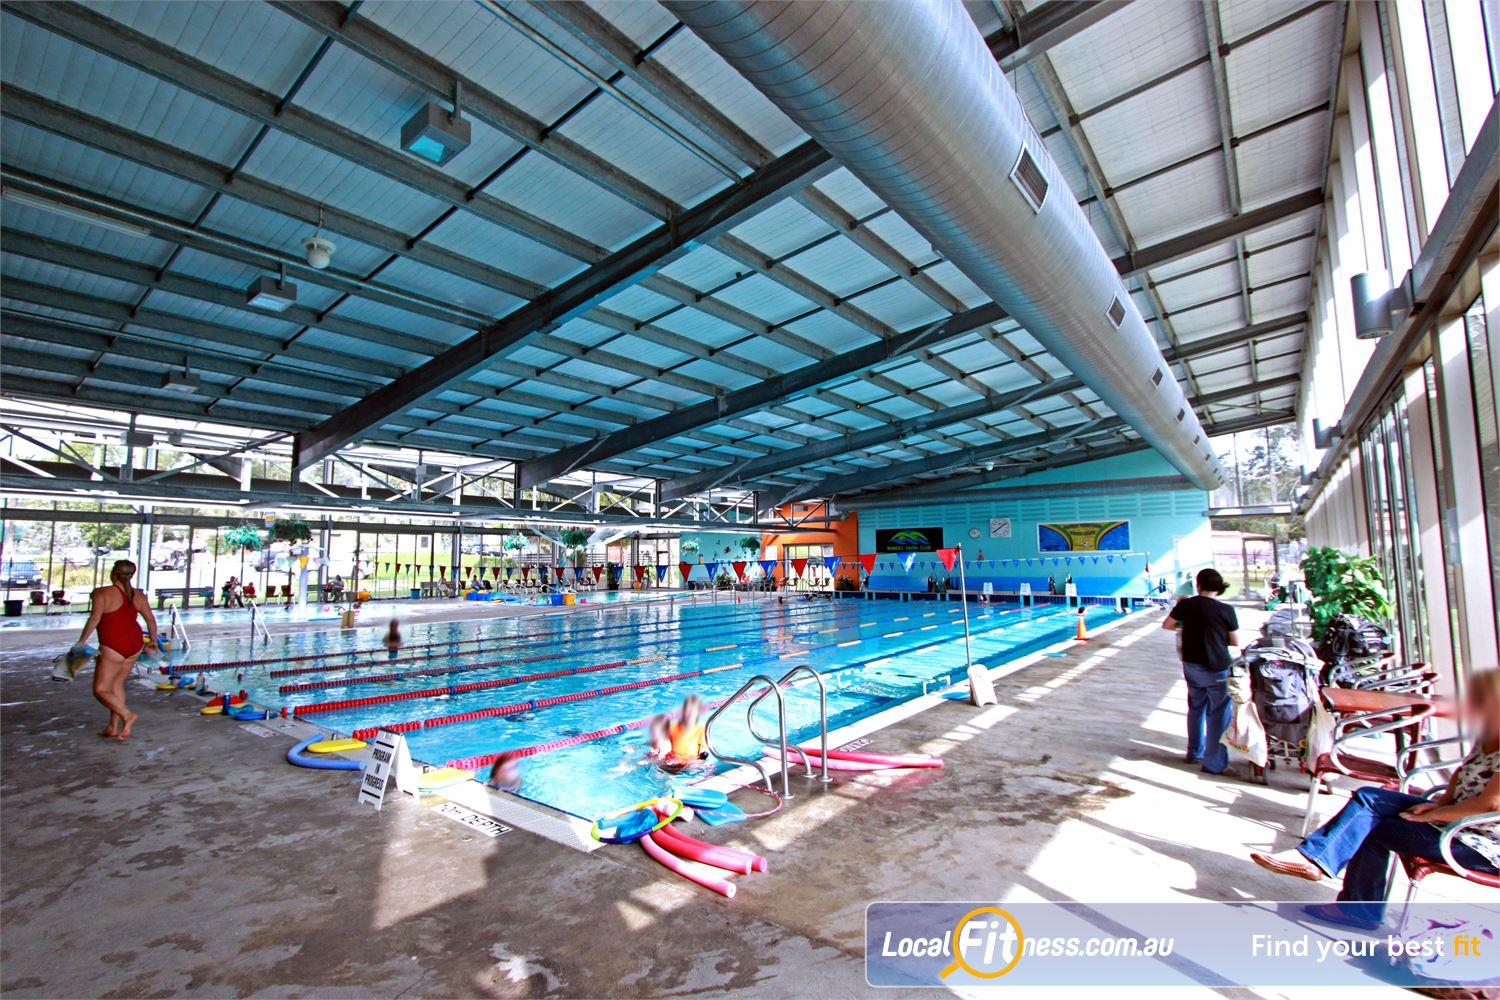 Yarra Recreation Centre Yarra Junction Perfect for lap lane swimming.